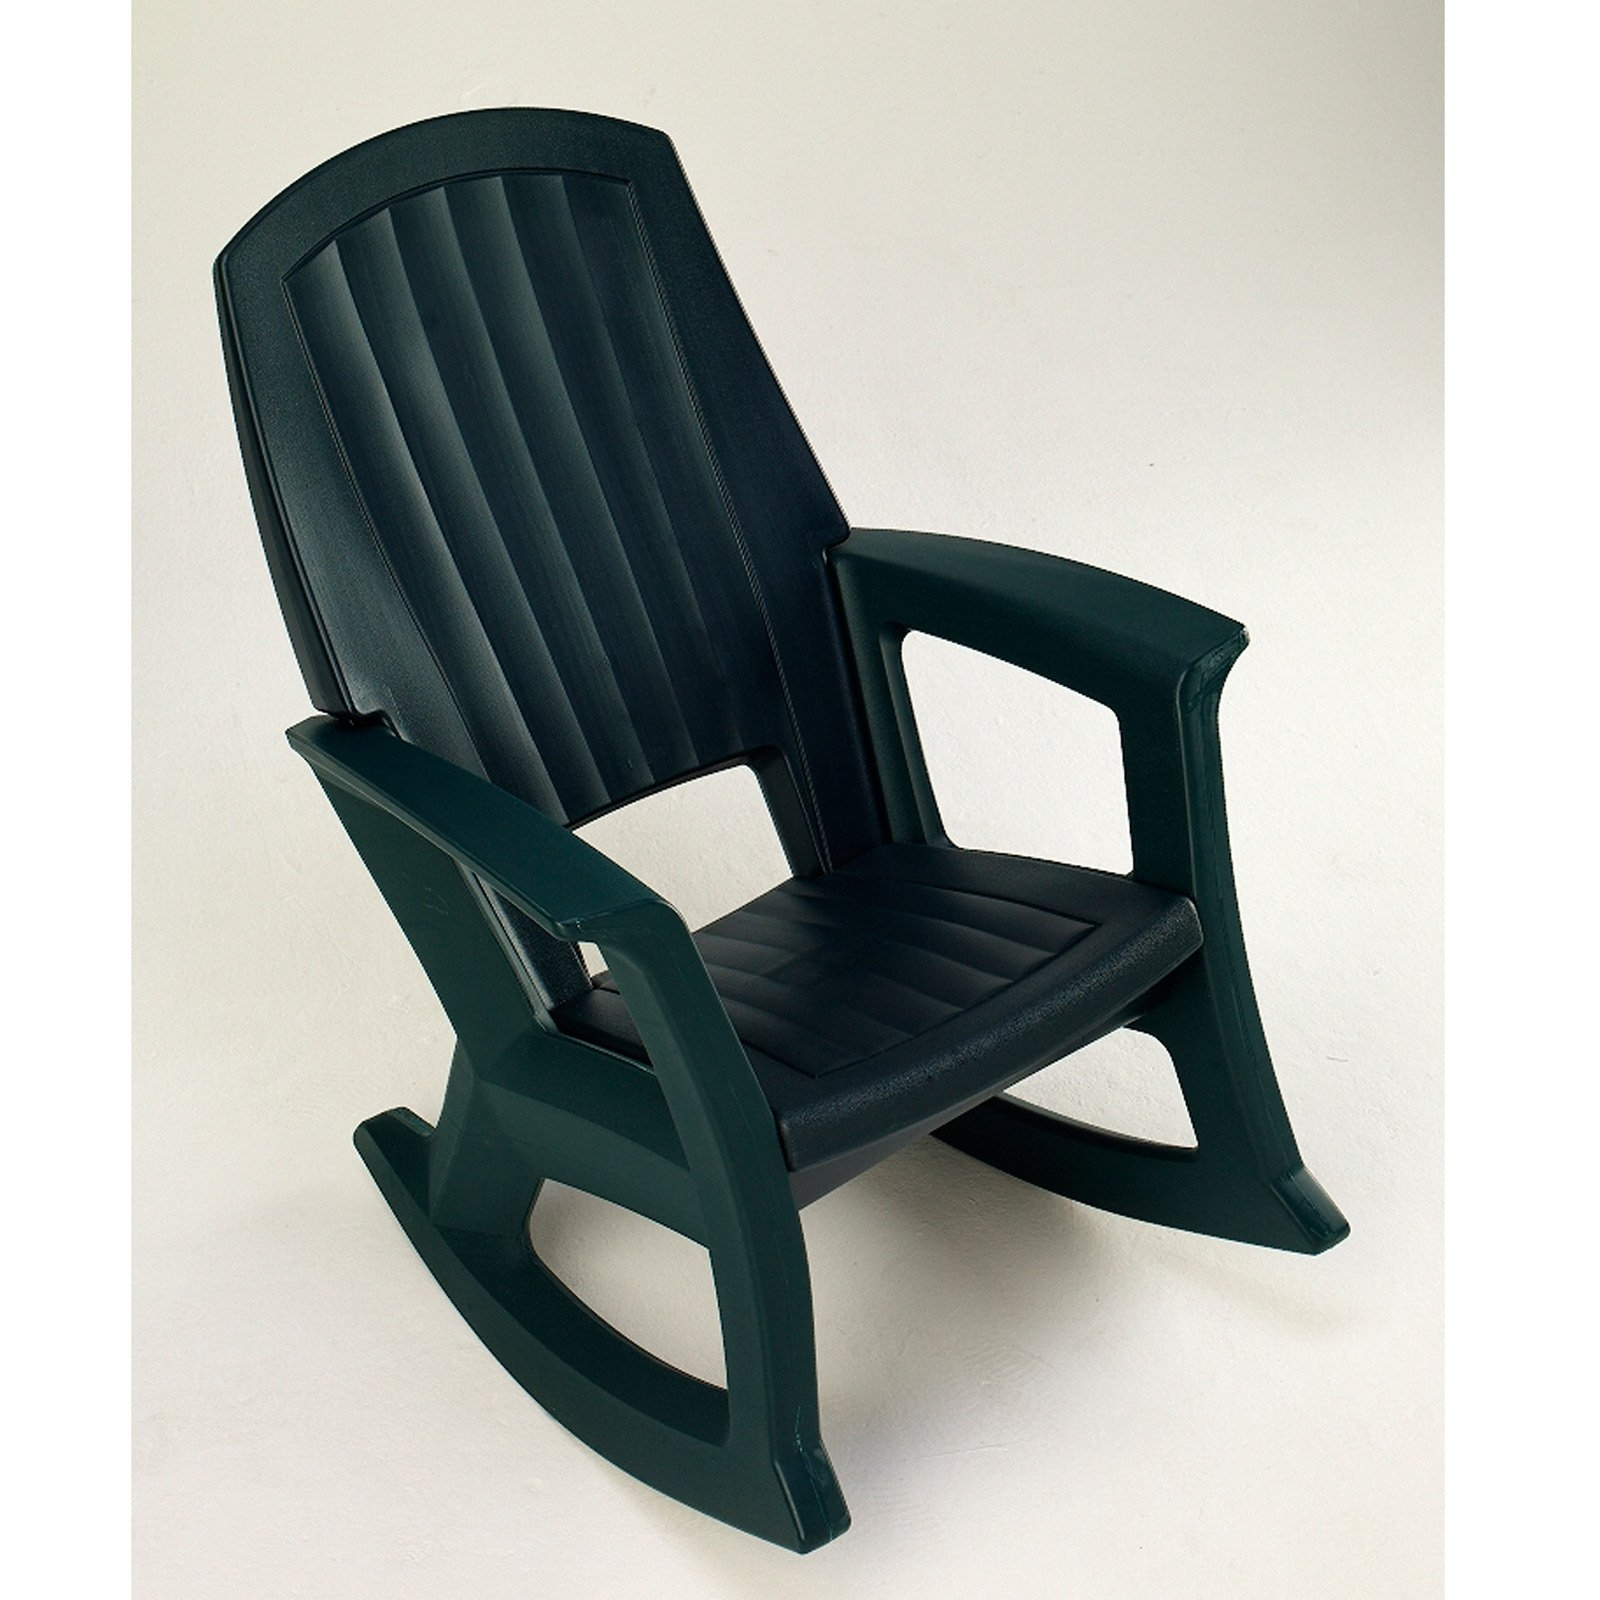 Rocking Chairs At Walmart Throughout Most Up To Date Semco Recycled Plastic Rocking Chair – Walmart (View 7 of 15)